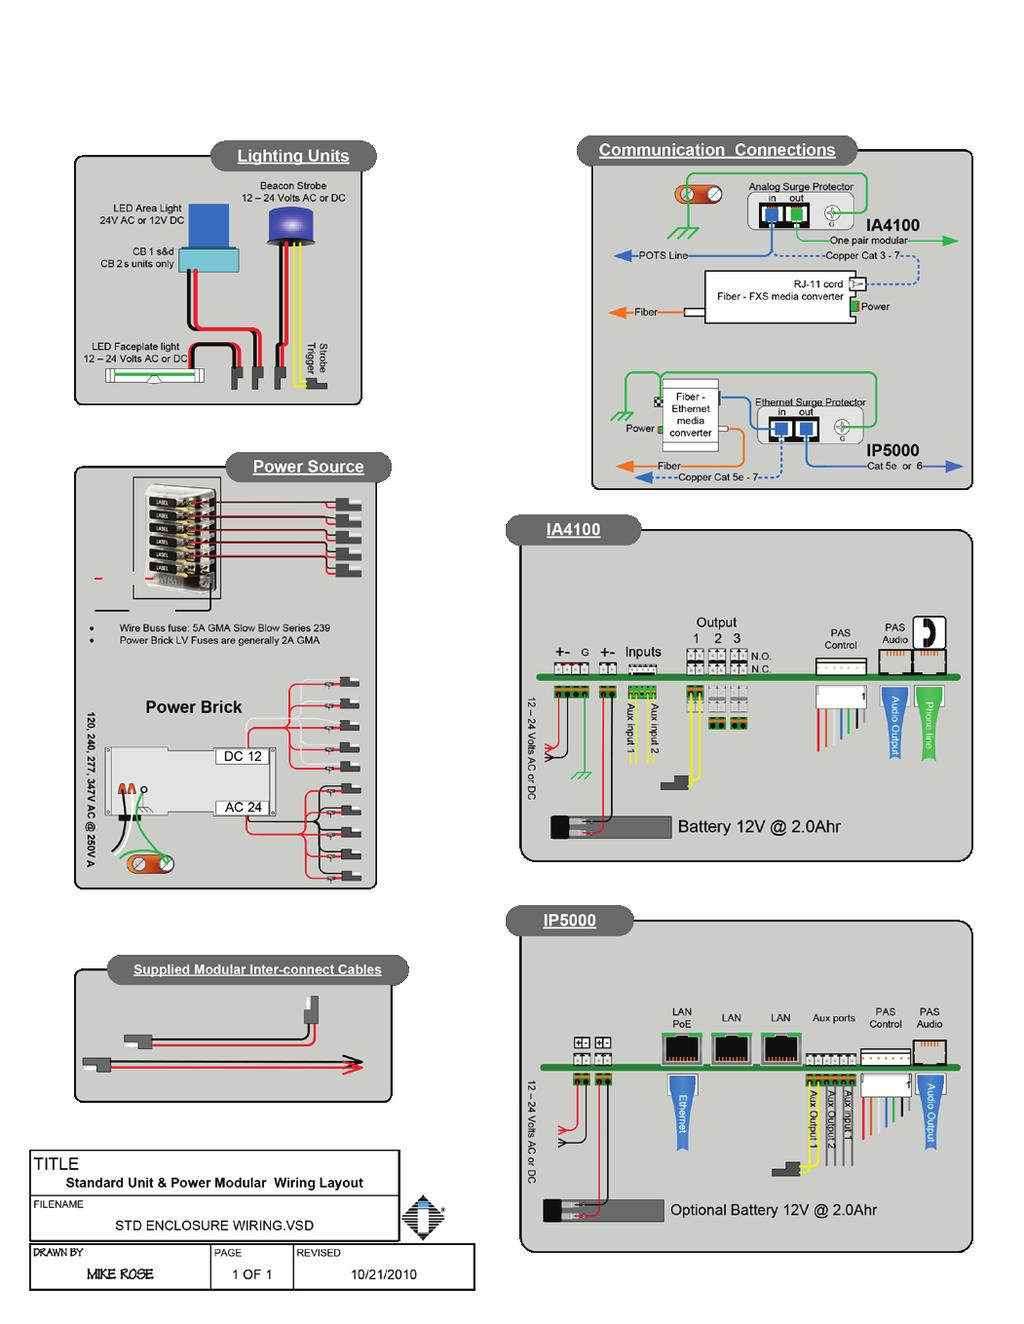 Dorable Poe Wiring Diagram Model - Electrical System Block Diagram ...